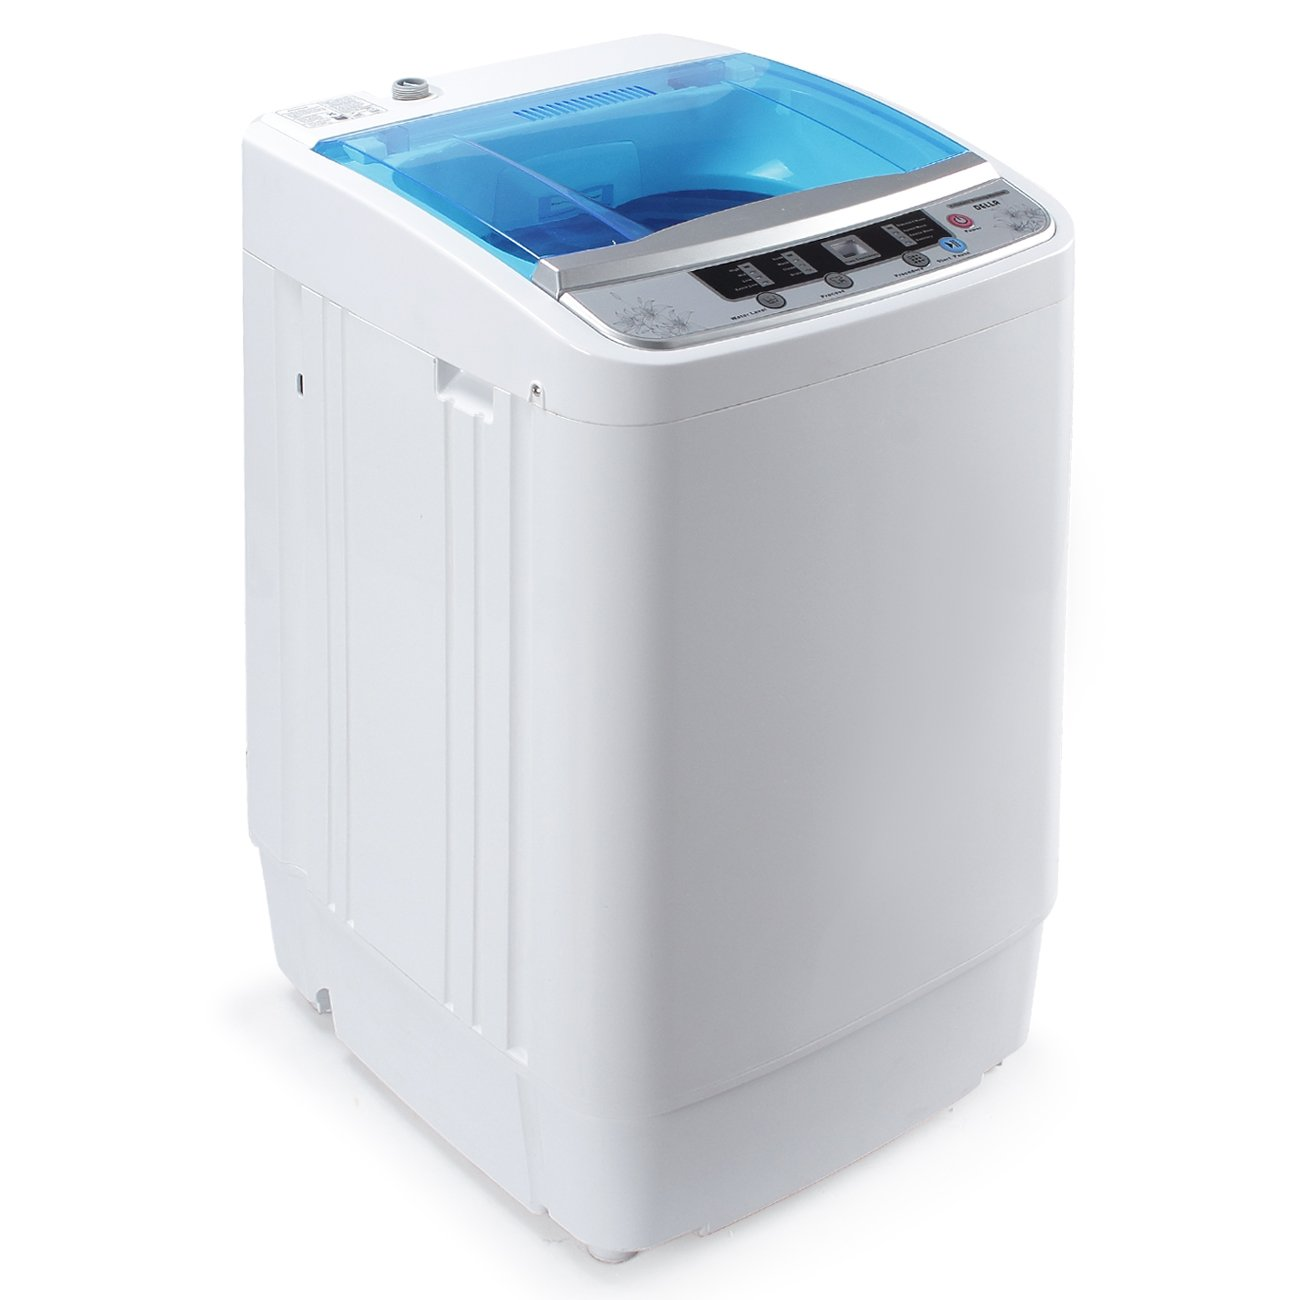 Amazon.com: Della Portable 3.5KG Compact Fully Holds 7.7lbs Load Automatic  Mini Home Washing Laundry Machine, White: Home U0026 Kitchen